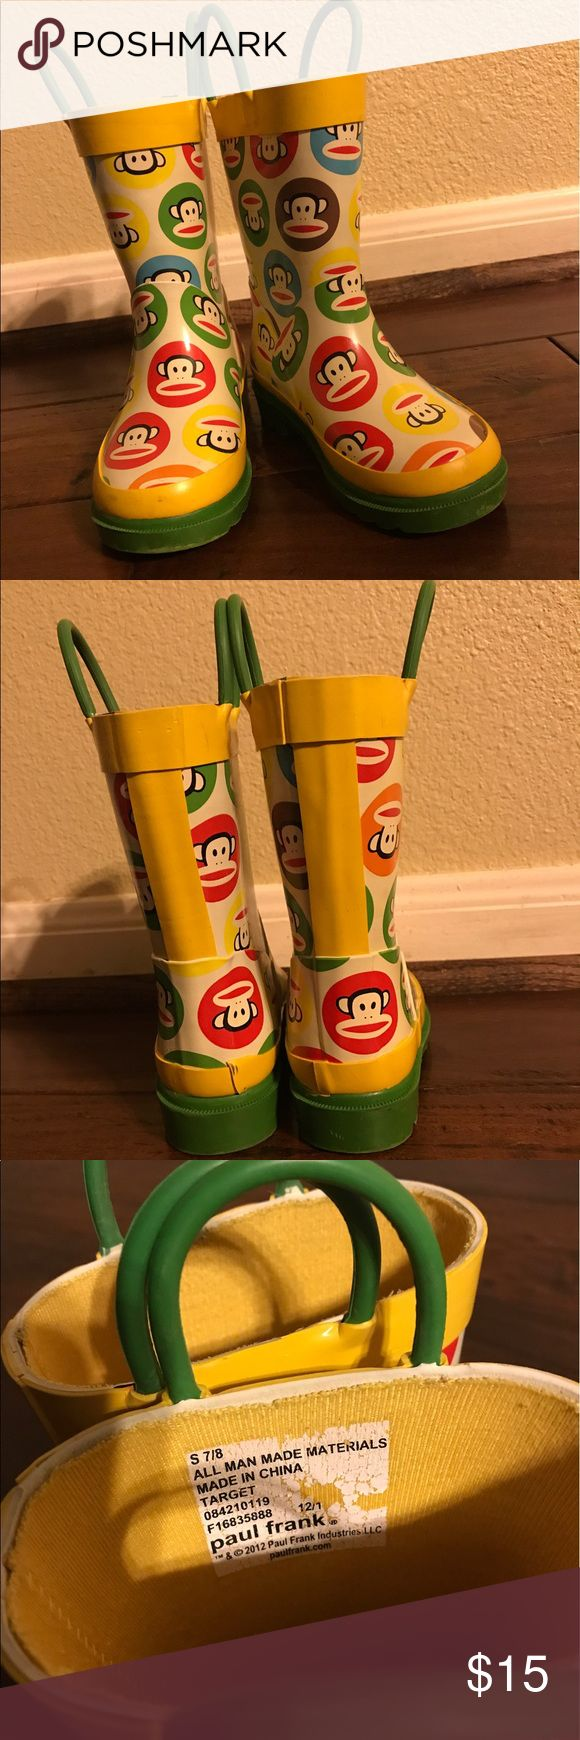 Children's rain boots by Paul Frank Cute rain boots for kids size small 7/8  they are Paul Frank Paul Frank Shoes Water Shoes